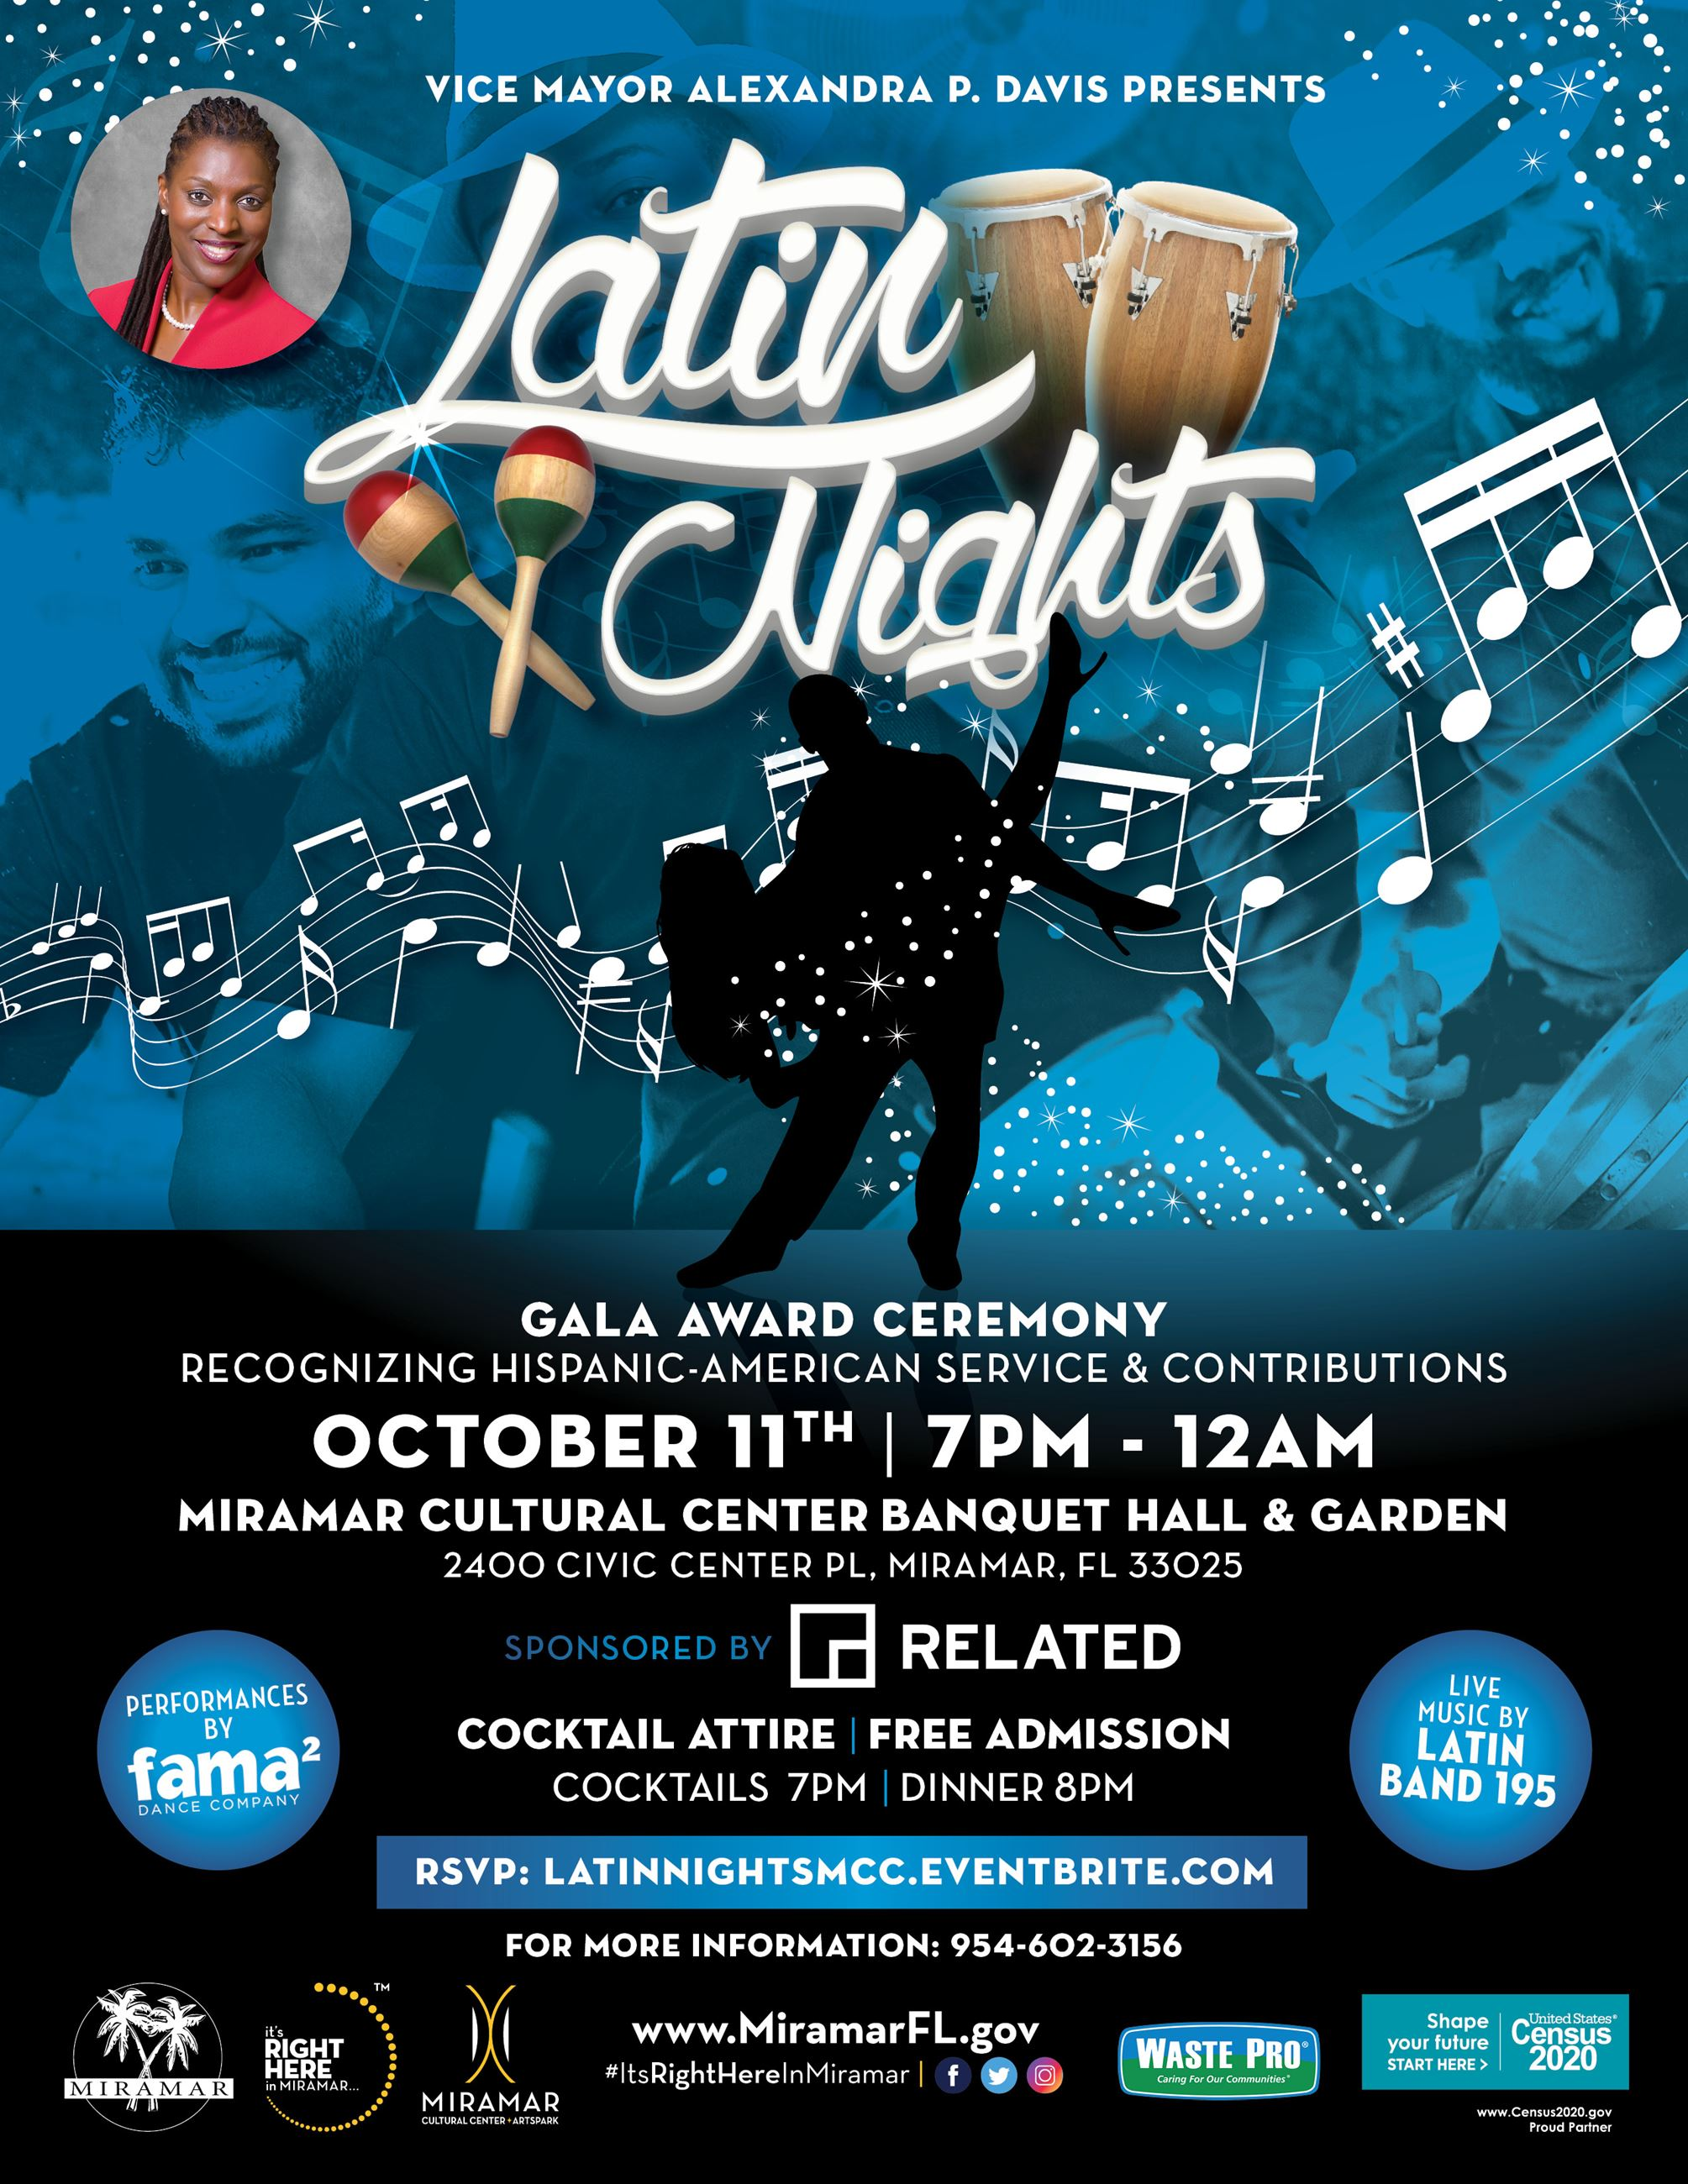 VMDavis-LatinNights-Flyer-V16